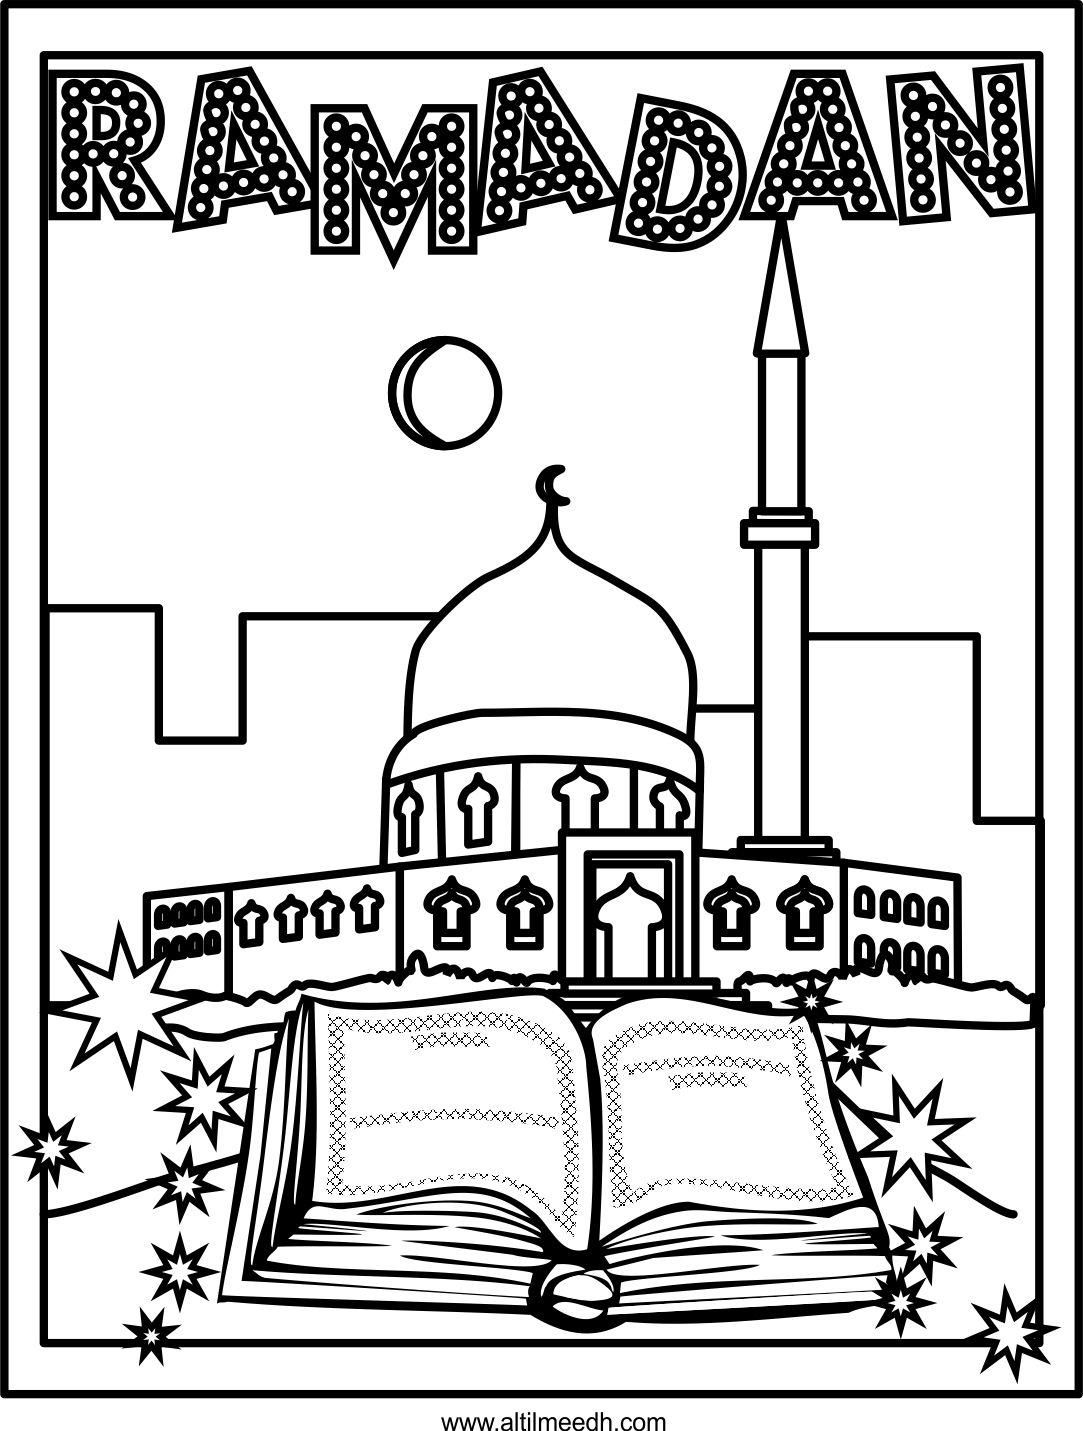 Coloring book page of a playground - Ramadan Coloring Page